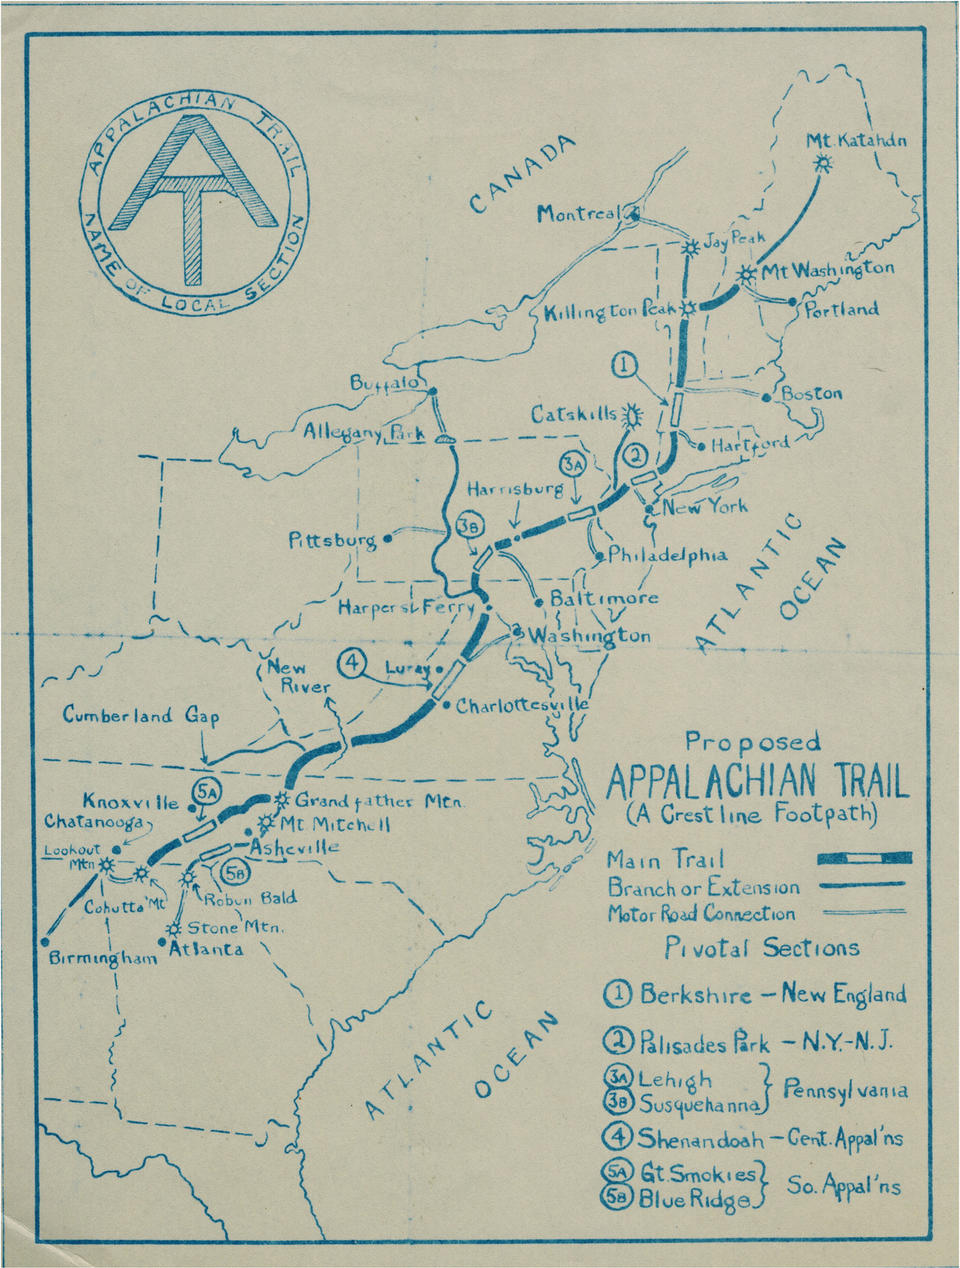 Proposed Appalachian Trail Route In 1925